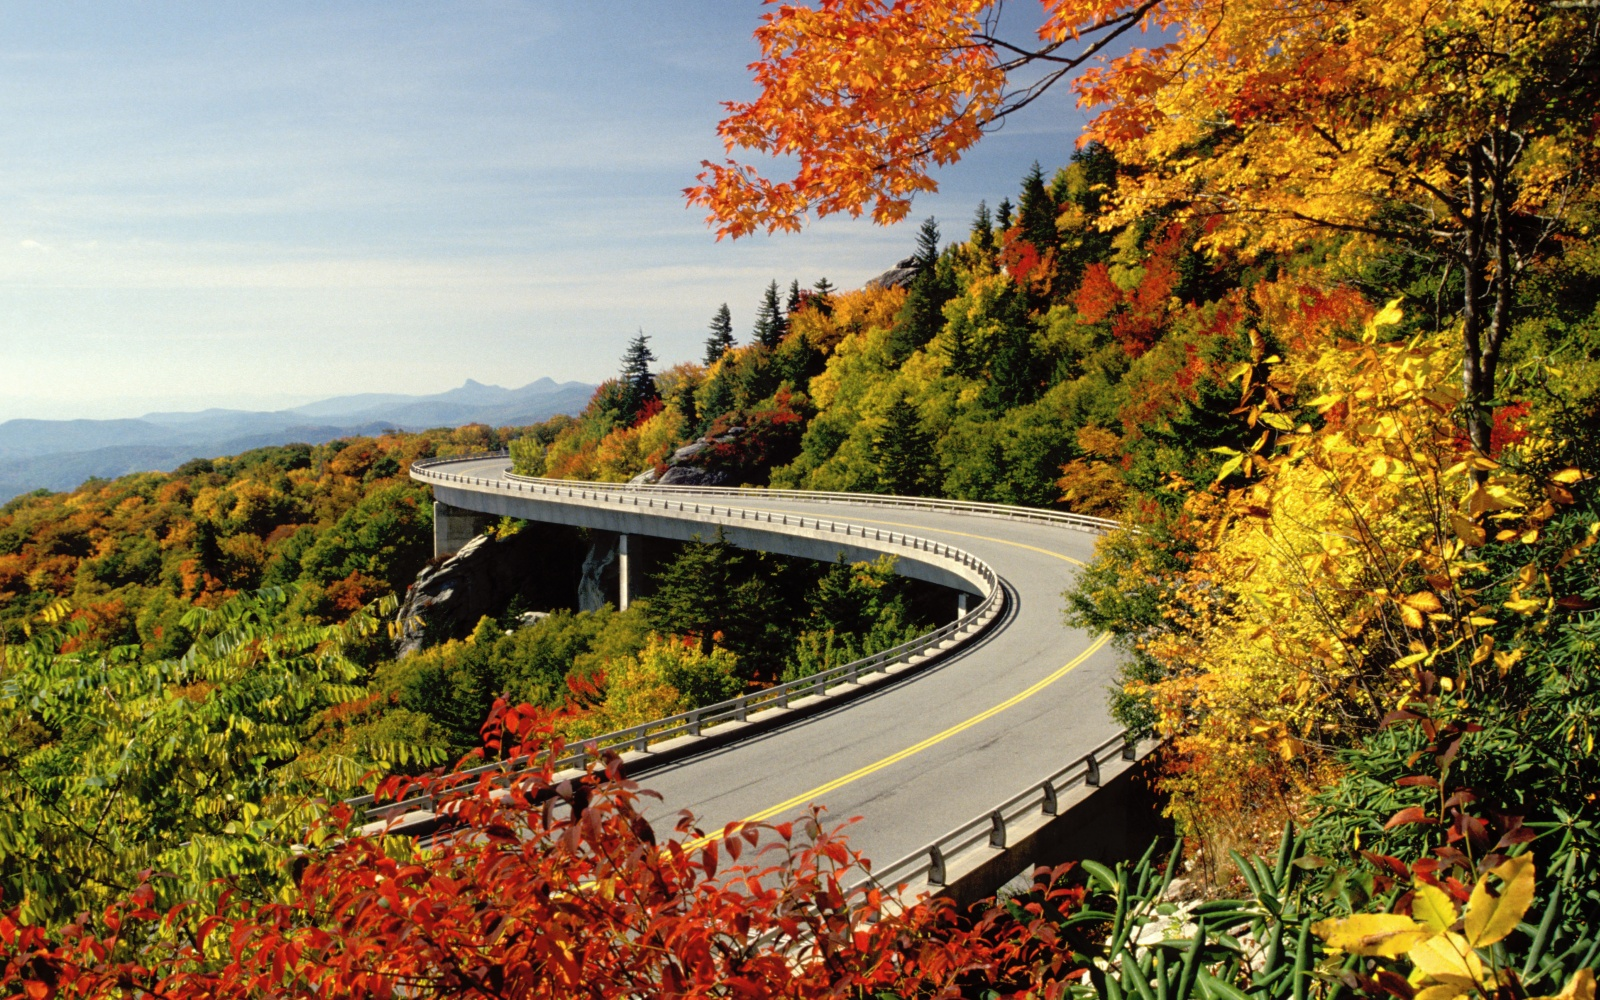 Blue Ridge Parkway, Virginia to North Carolina